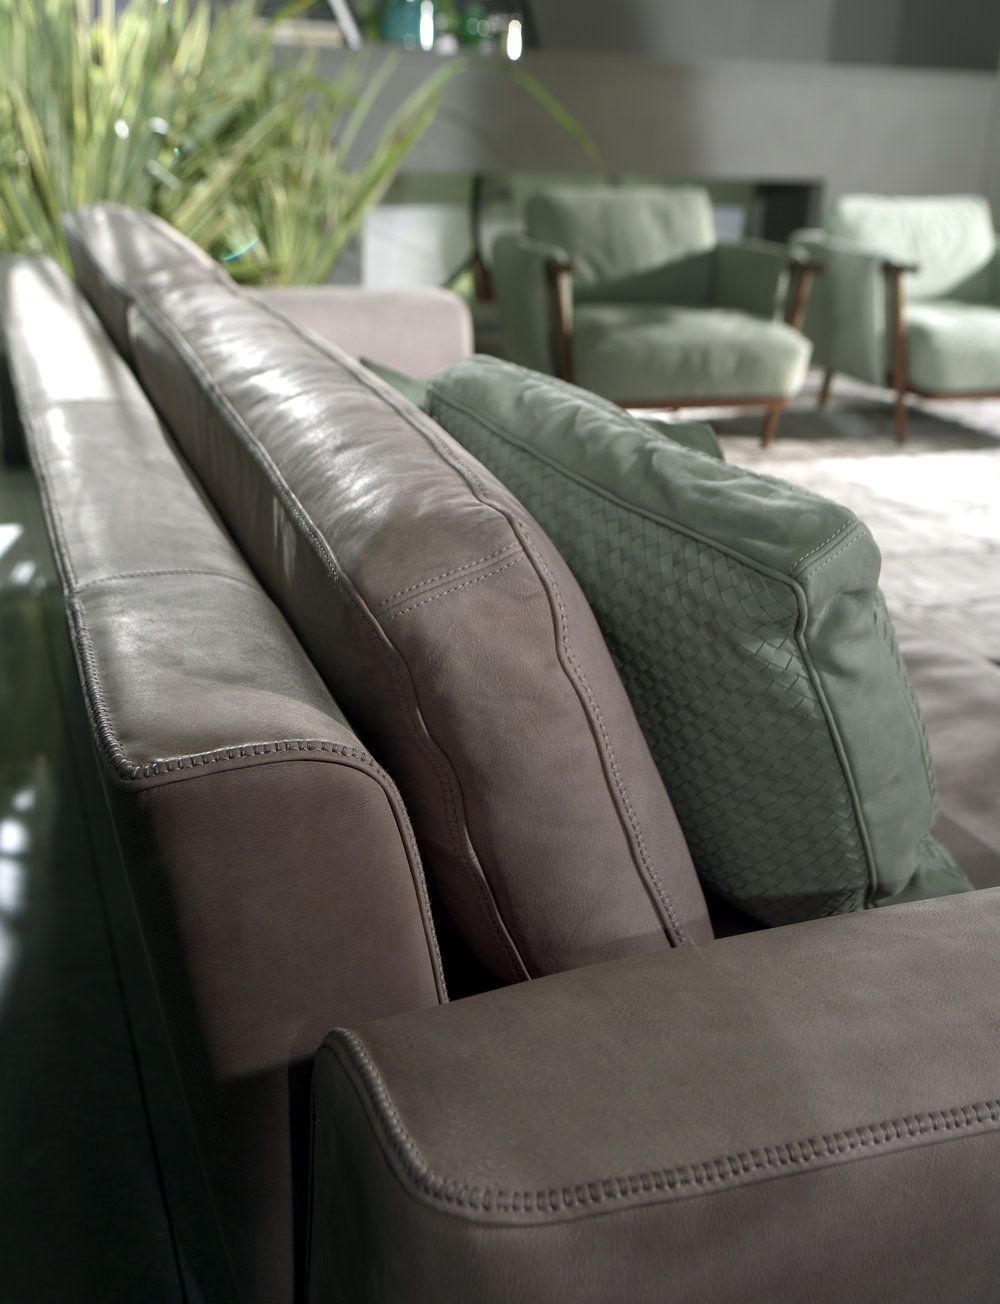 Ulivi Salotti - Robert leather sofa detail - Masha Shapiro Agency.jpg